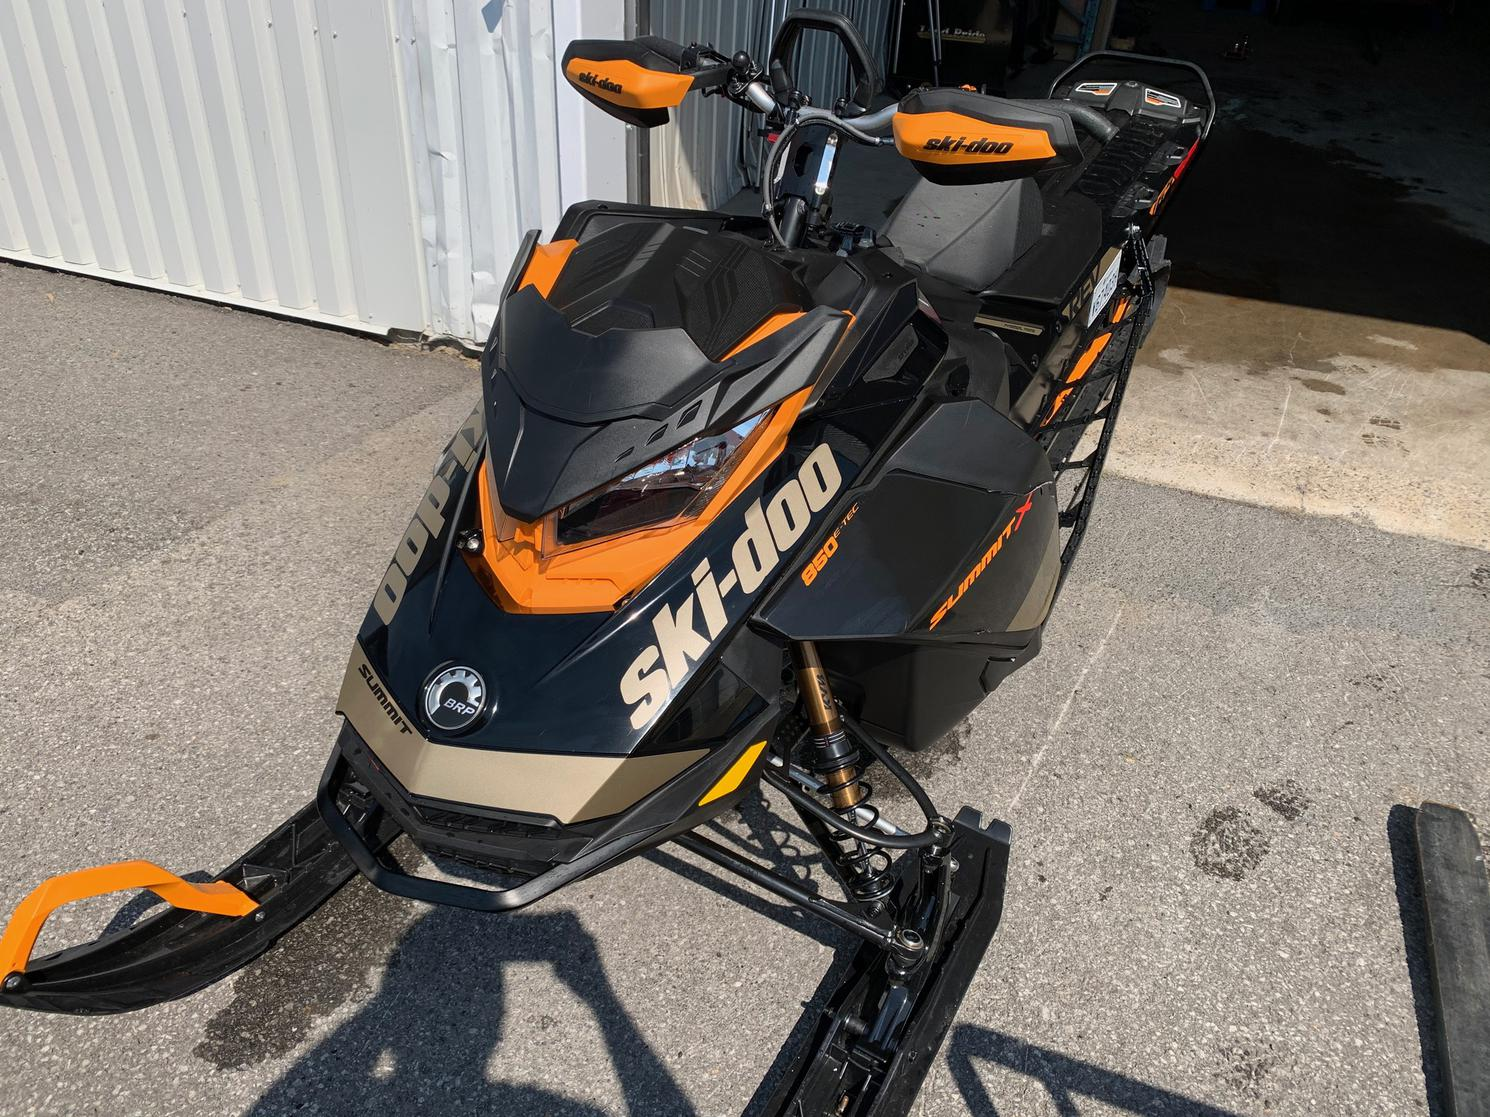 2020 Ski-Doo SUMMIT EXPERT 165 850 SHOT